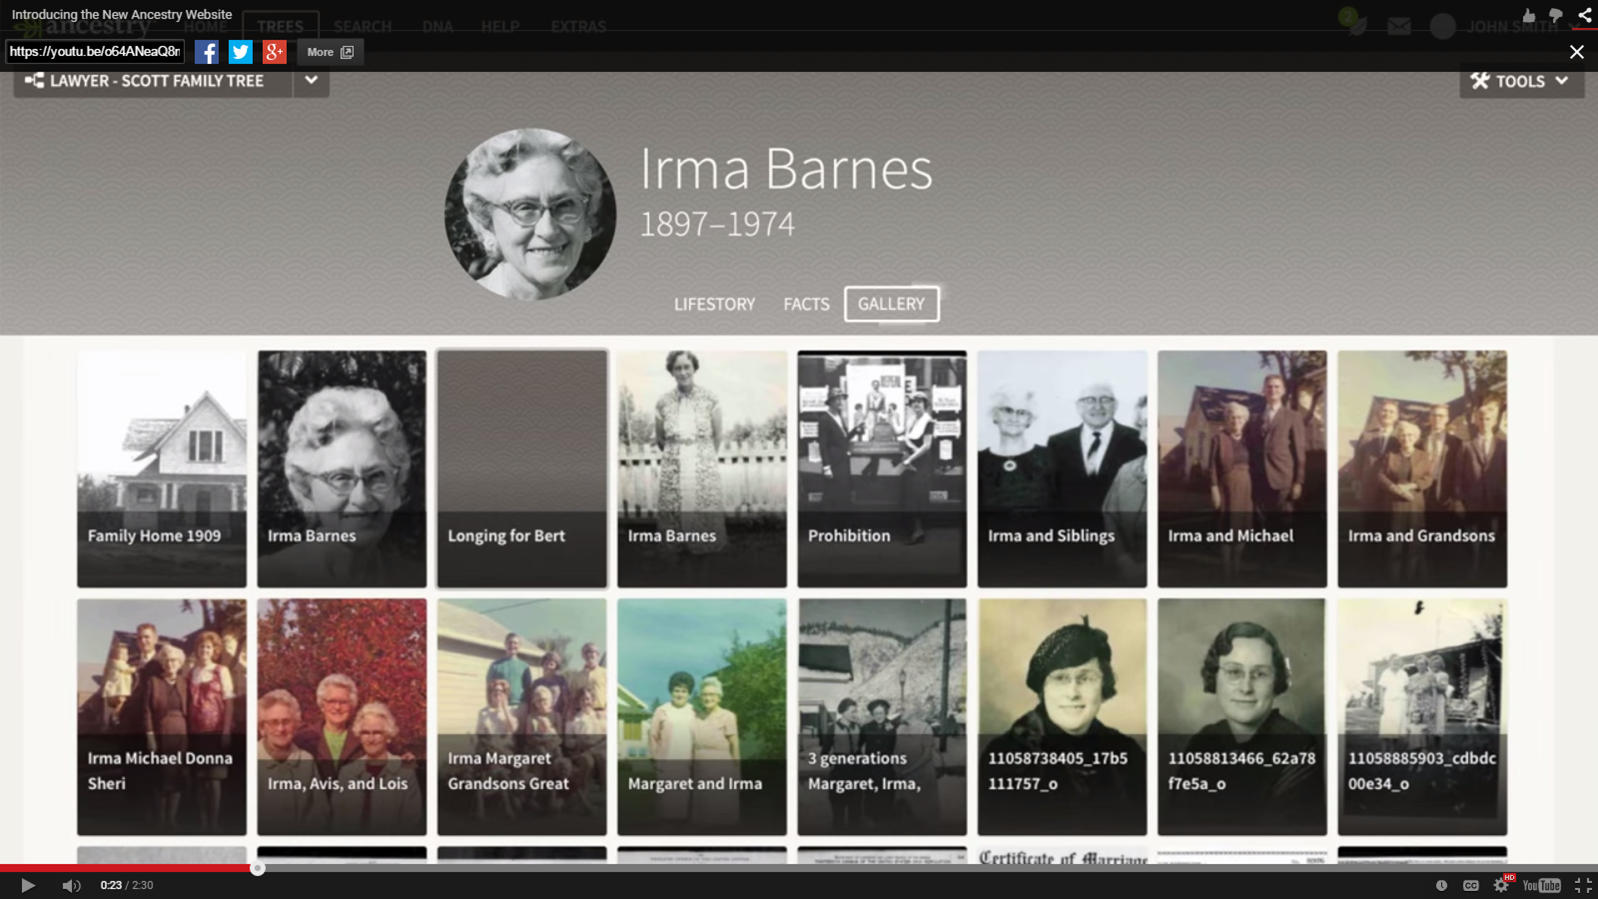 The New Ancestry Site: New Features, Mixed Reviews